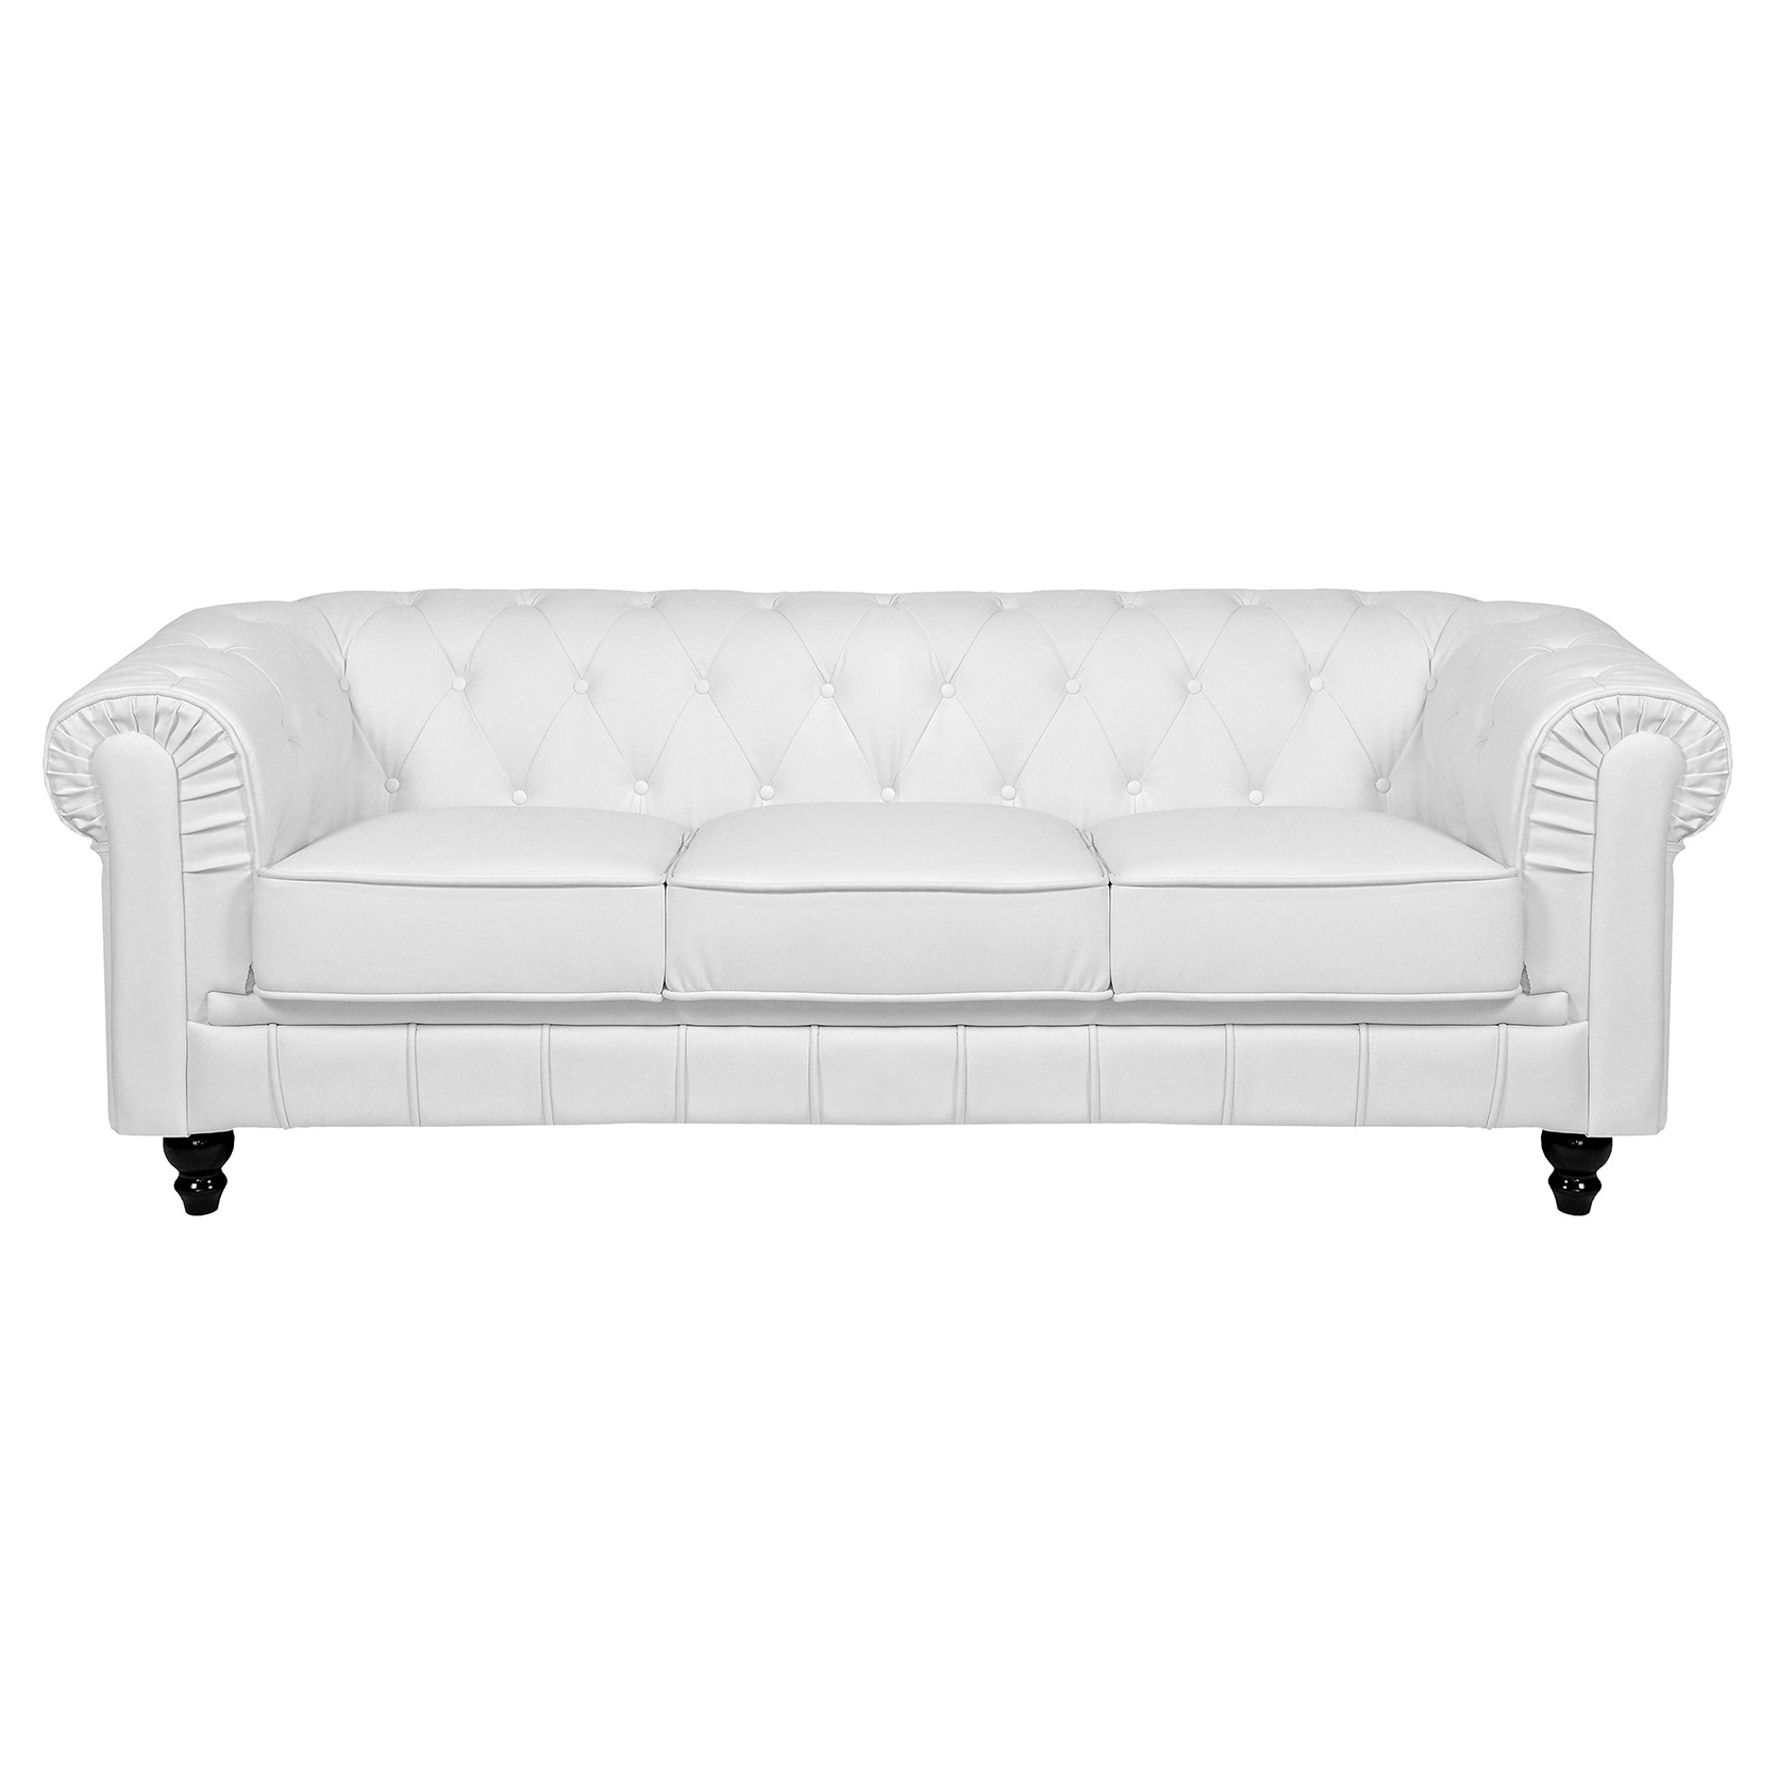 deco in paris canape 3 places blanc chesterfield can chester 3p pu blanc. Black Bedroom Furniture Sets. Home Design Ideas